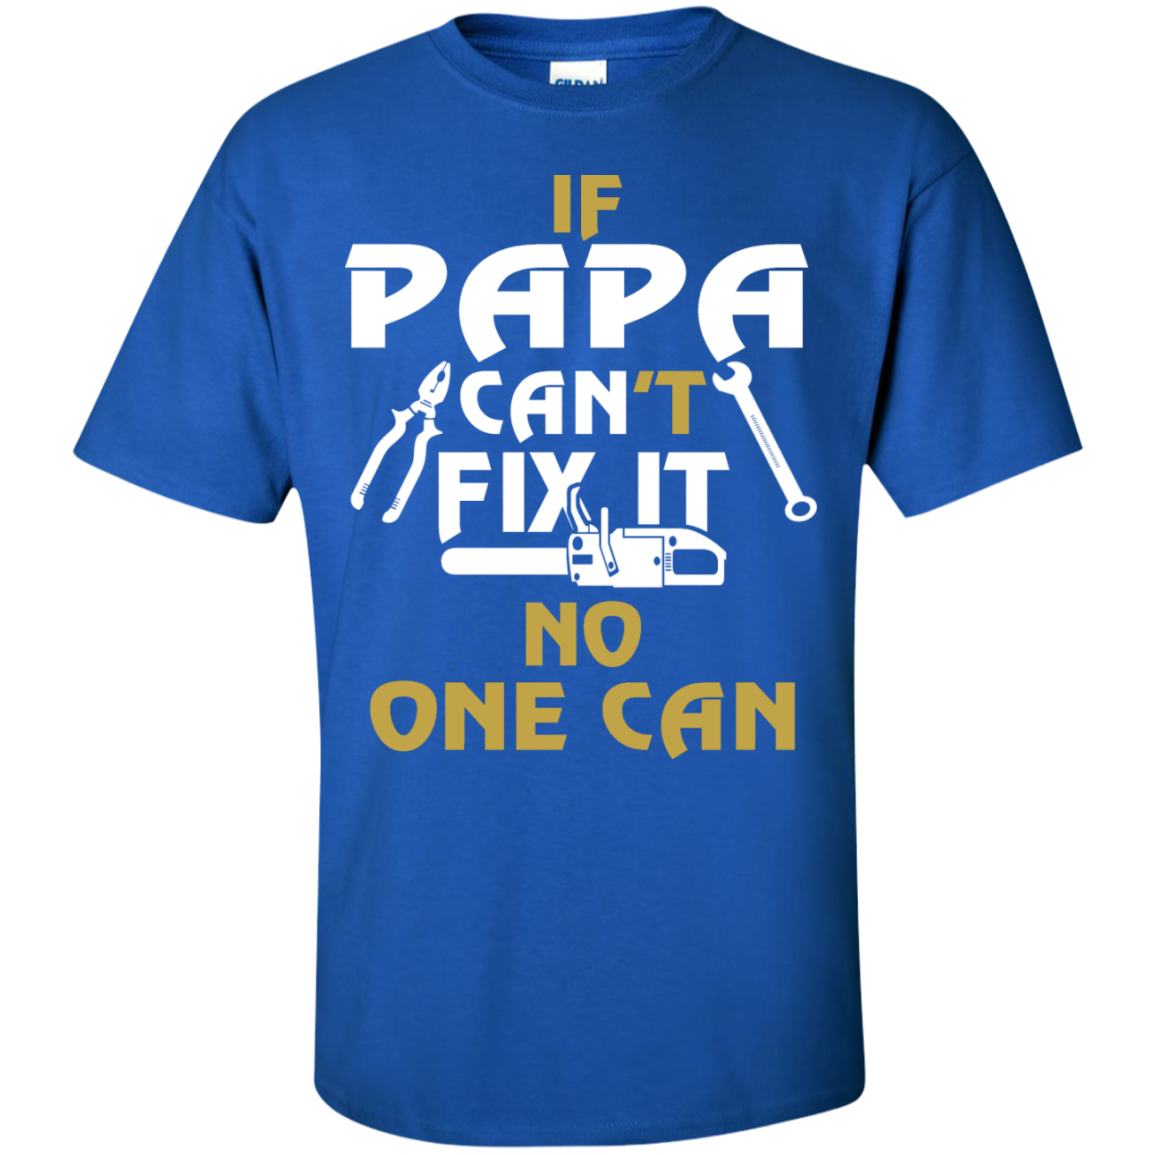 Father's Day Shirt - If PAW PAW Can't Fix It No One Can - The Sun Cat